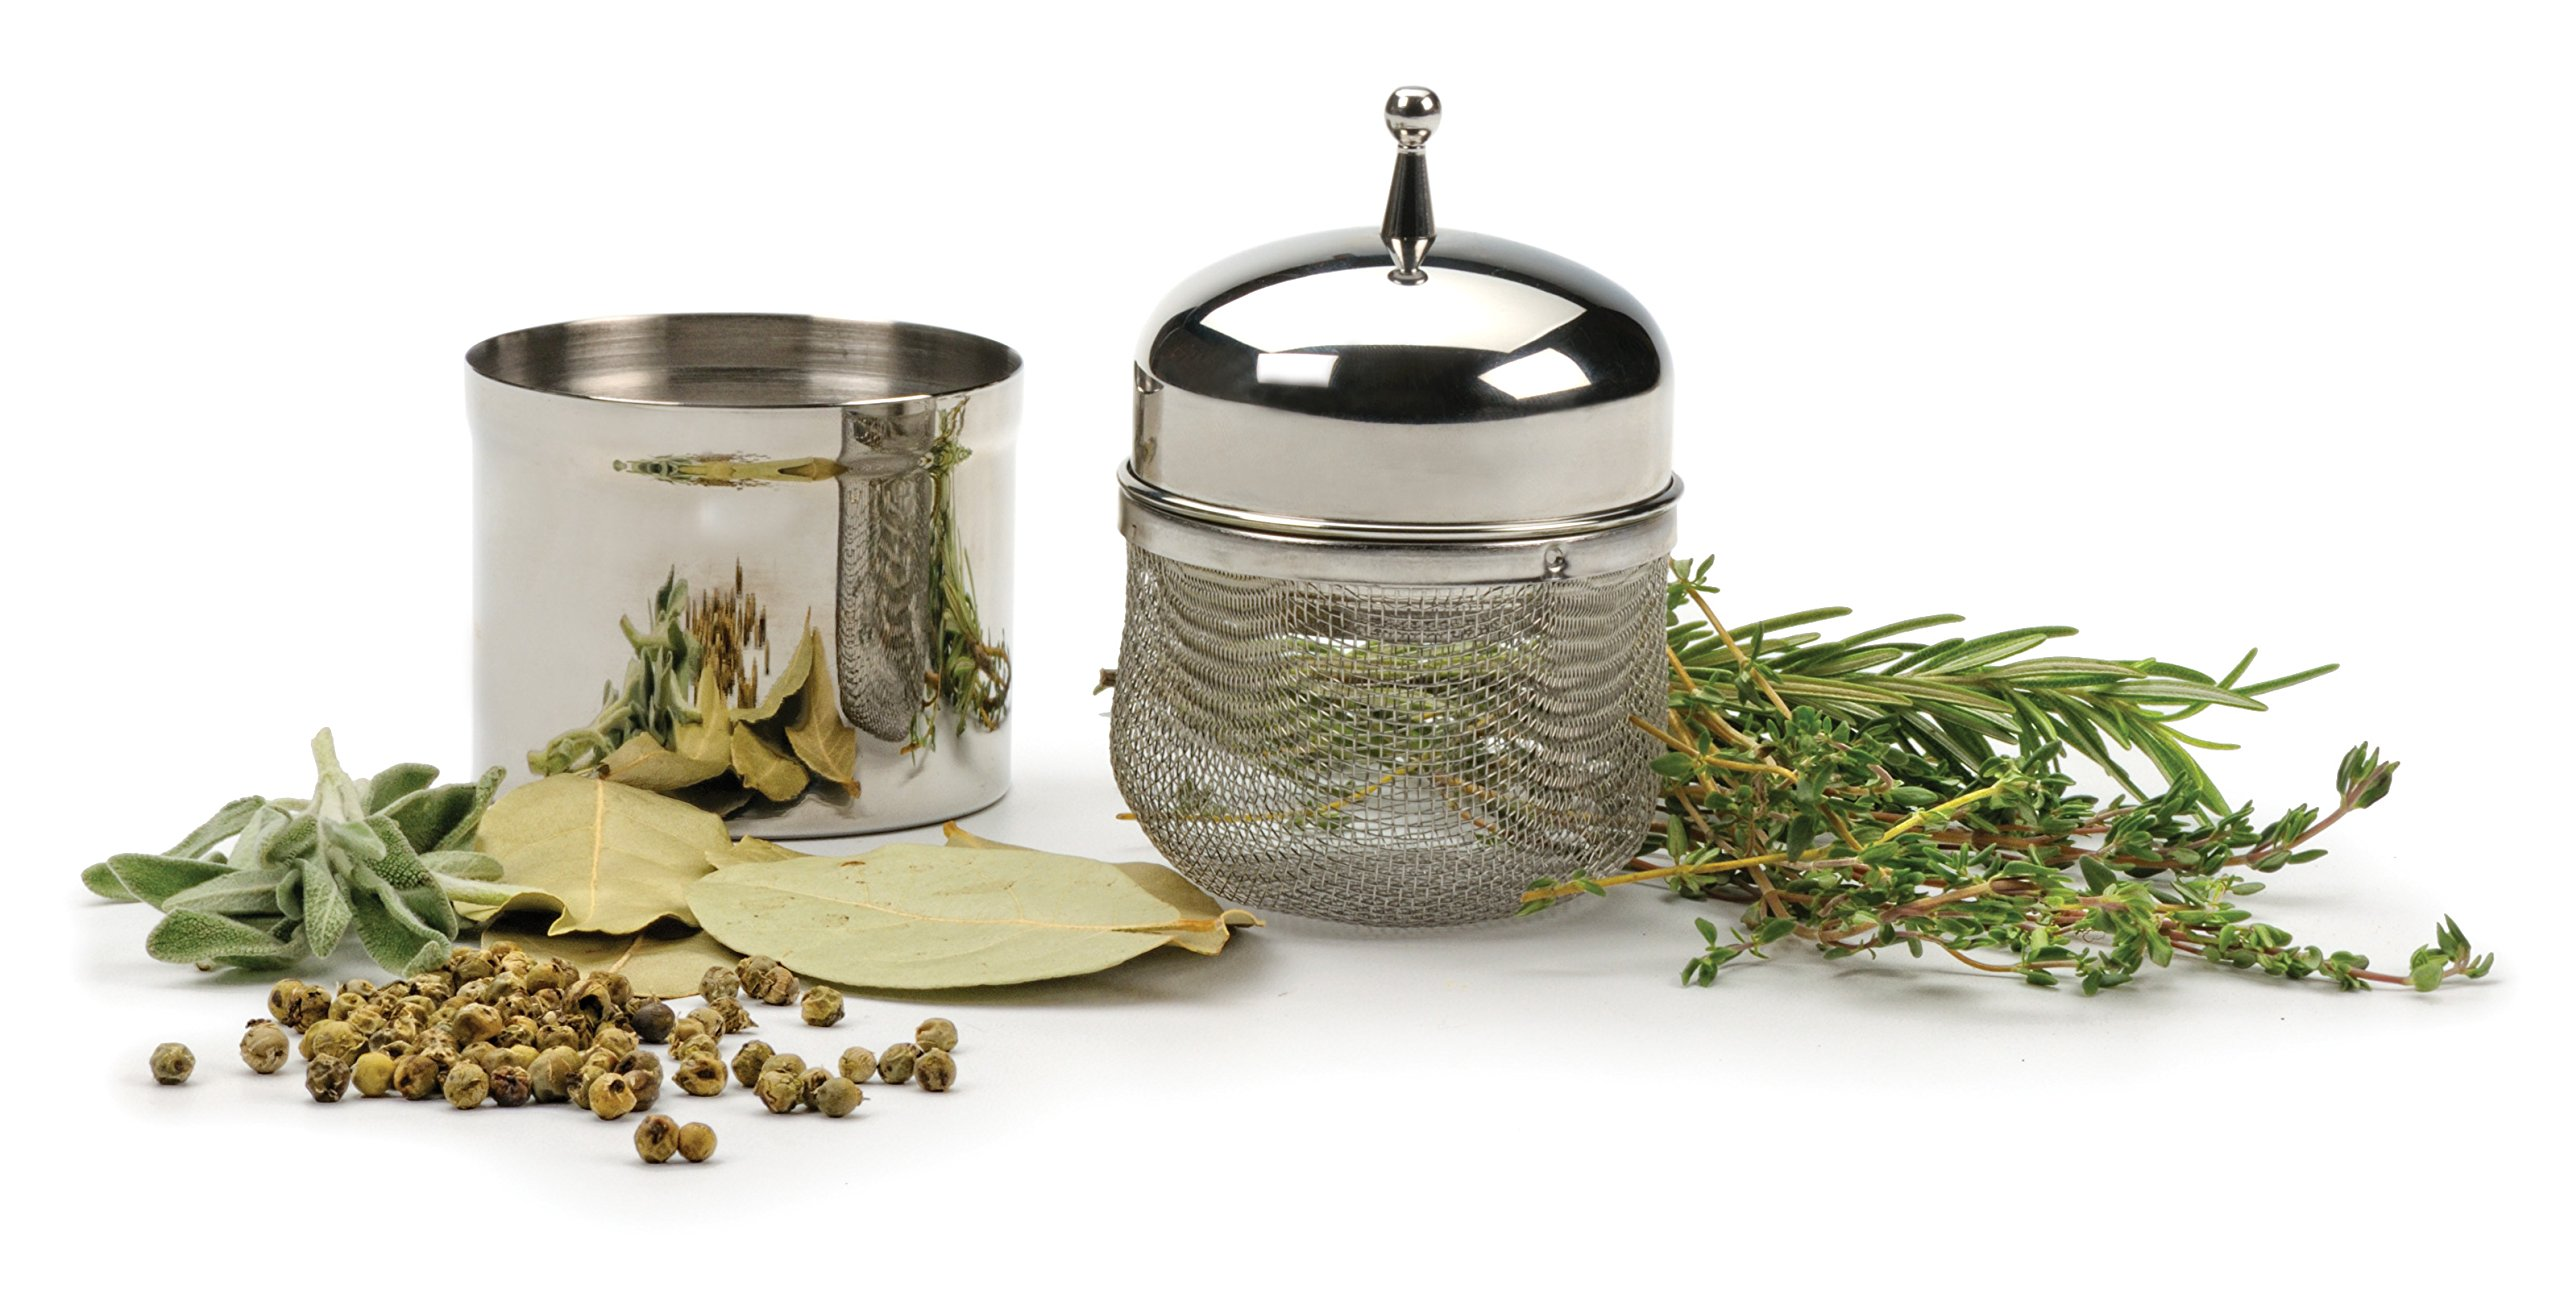 RSVP Endurance Stainless Steel Floating Spice Ball Infuser, 1/2-Cup capacity by RSVP International (Image #3)